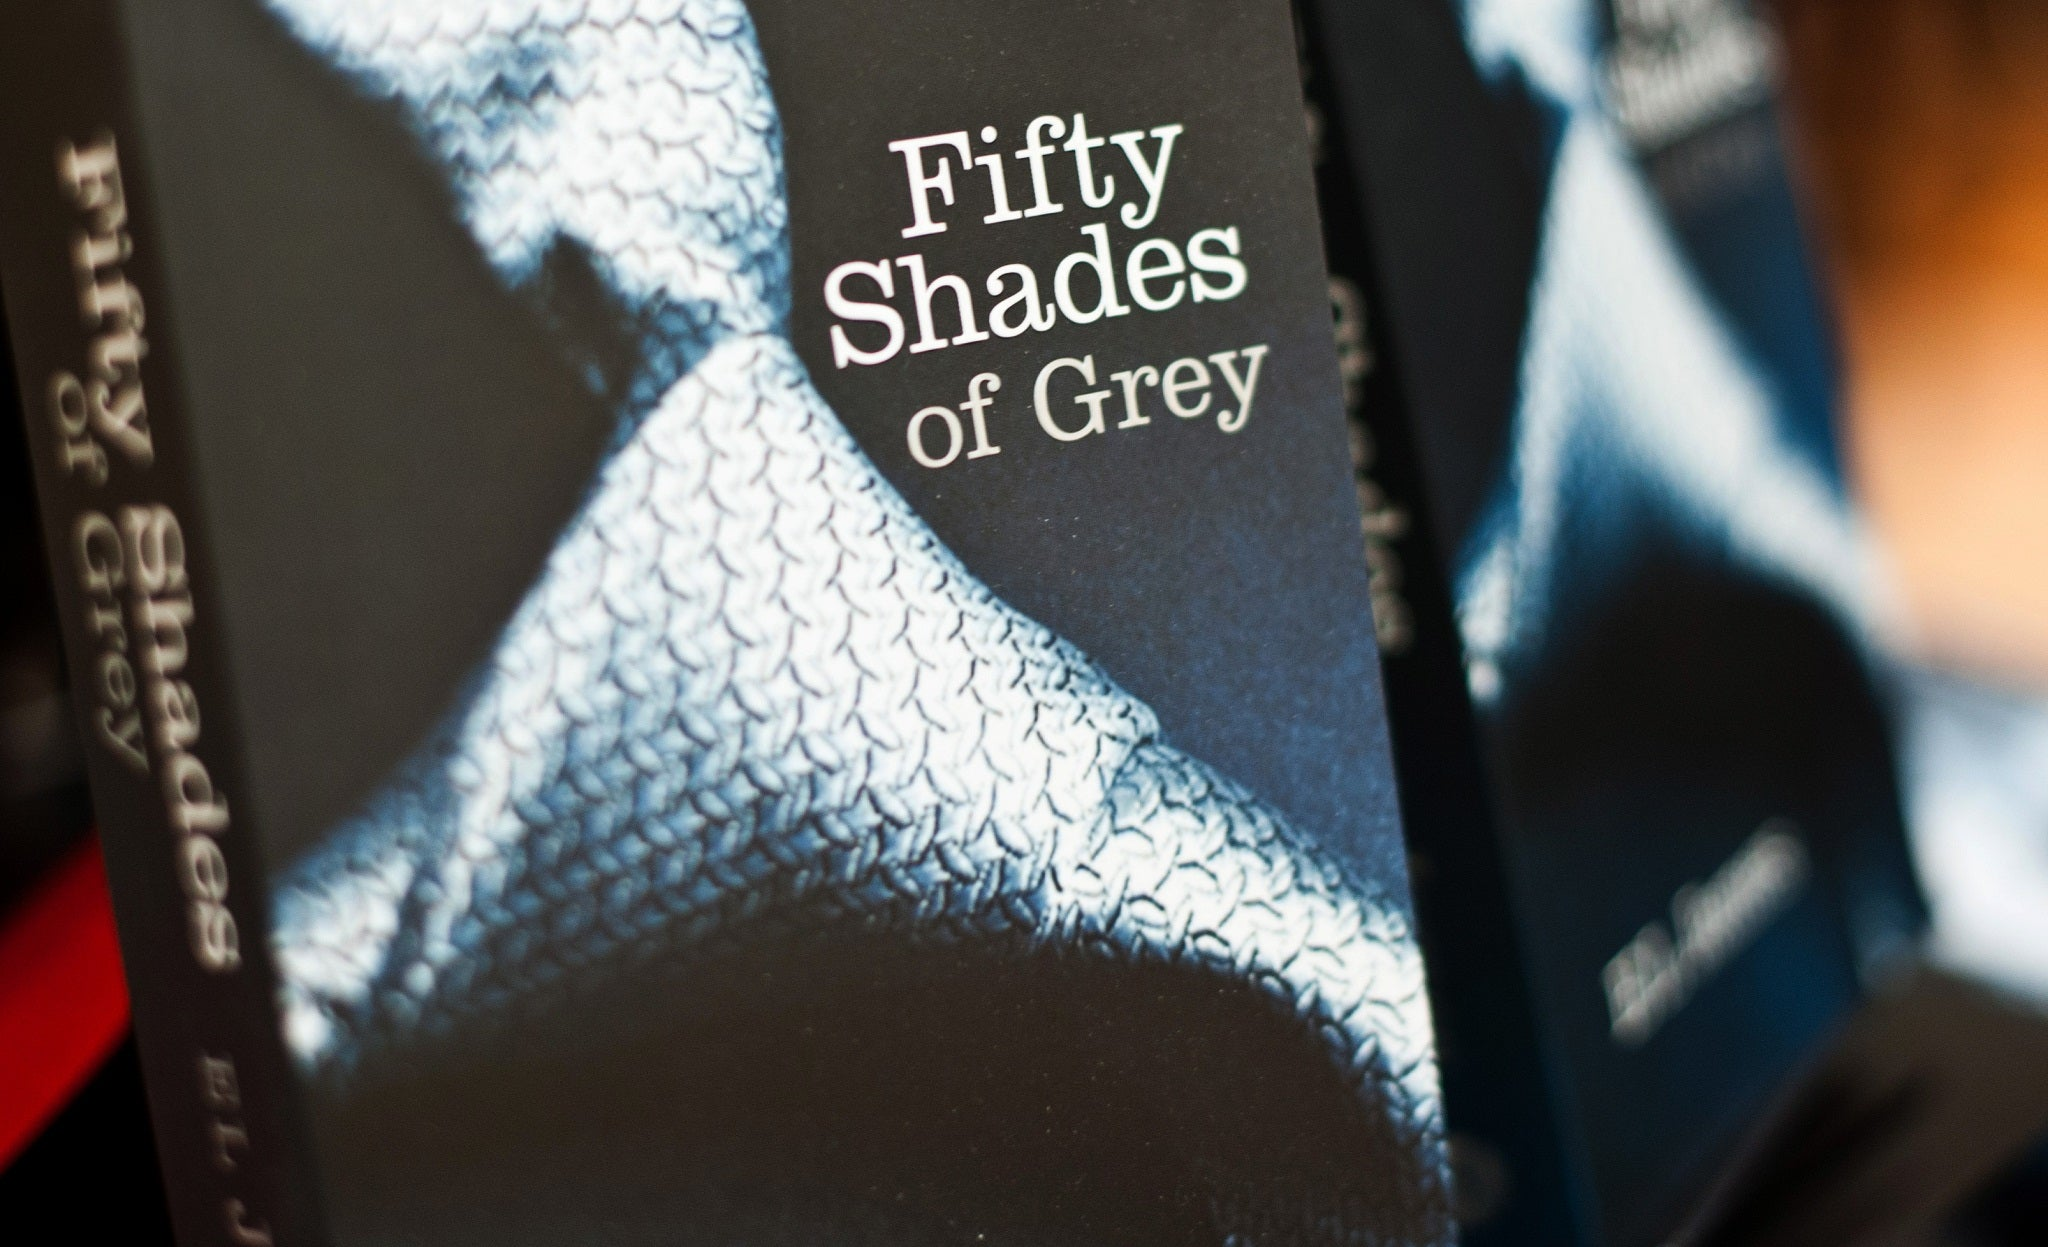 Fifty Shades is the book most likely to be left behind in hotel rooms